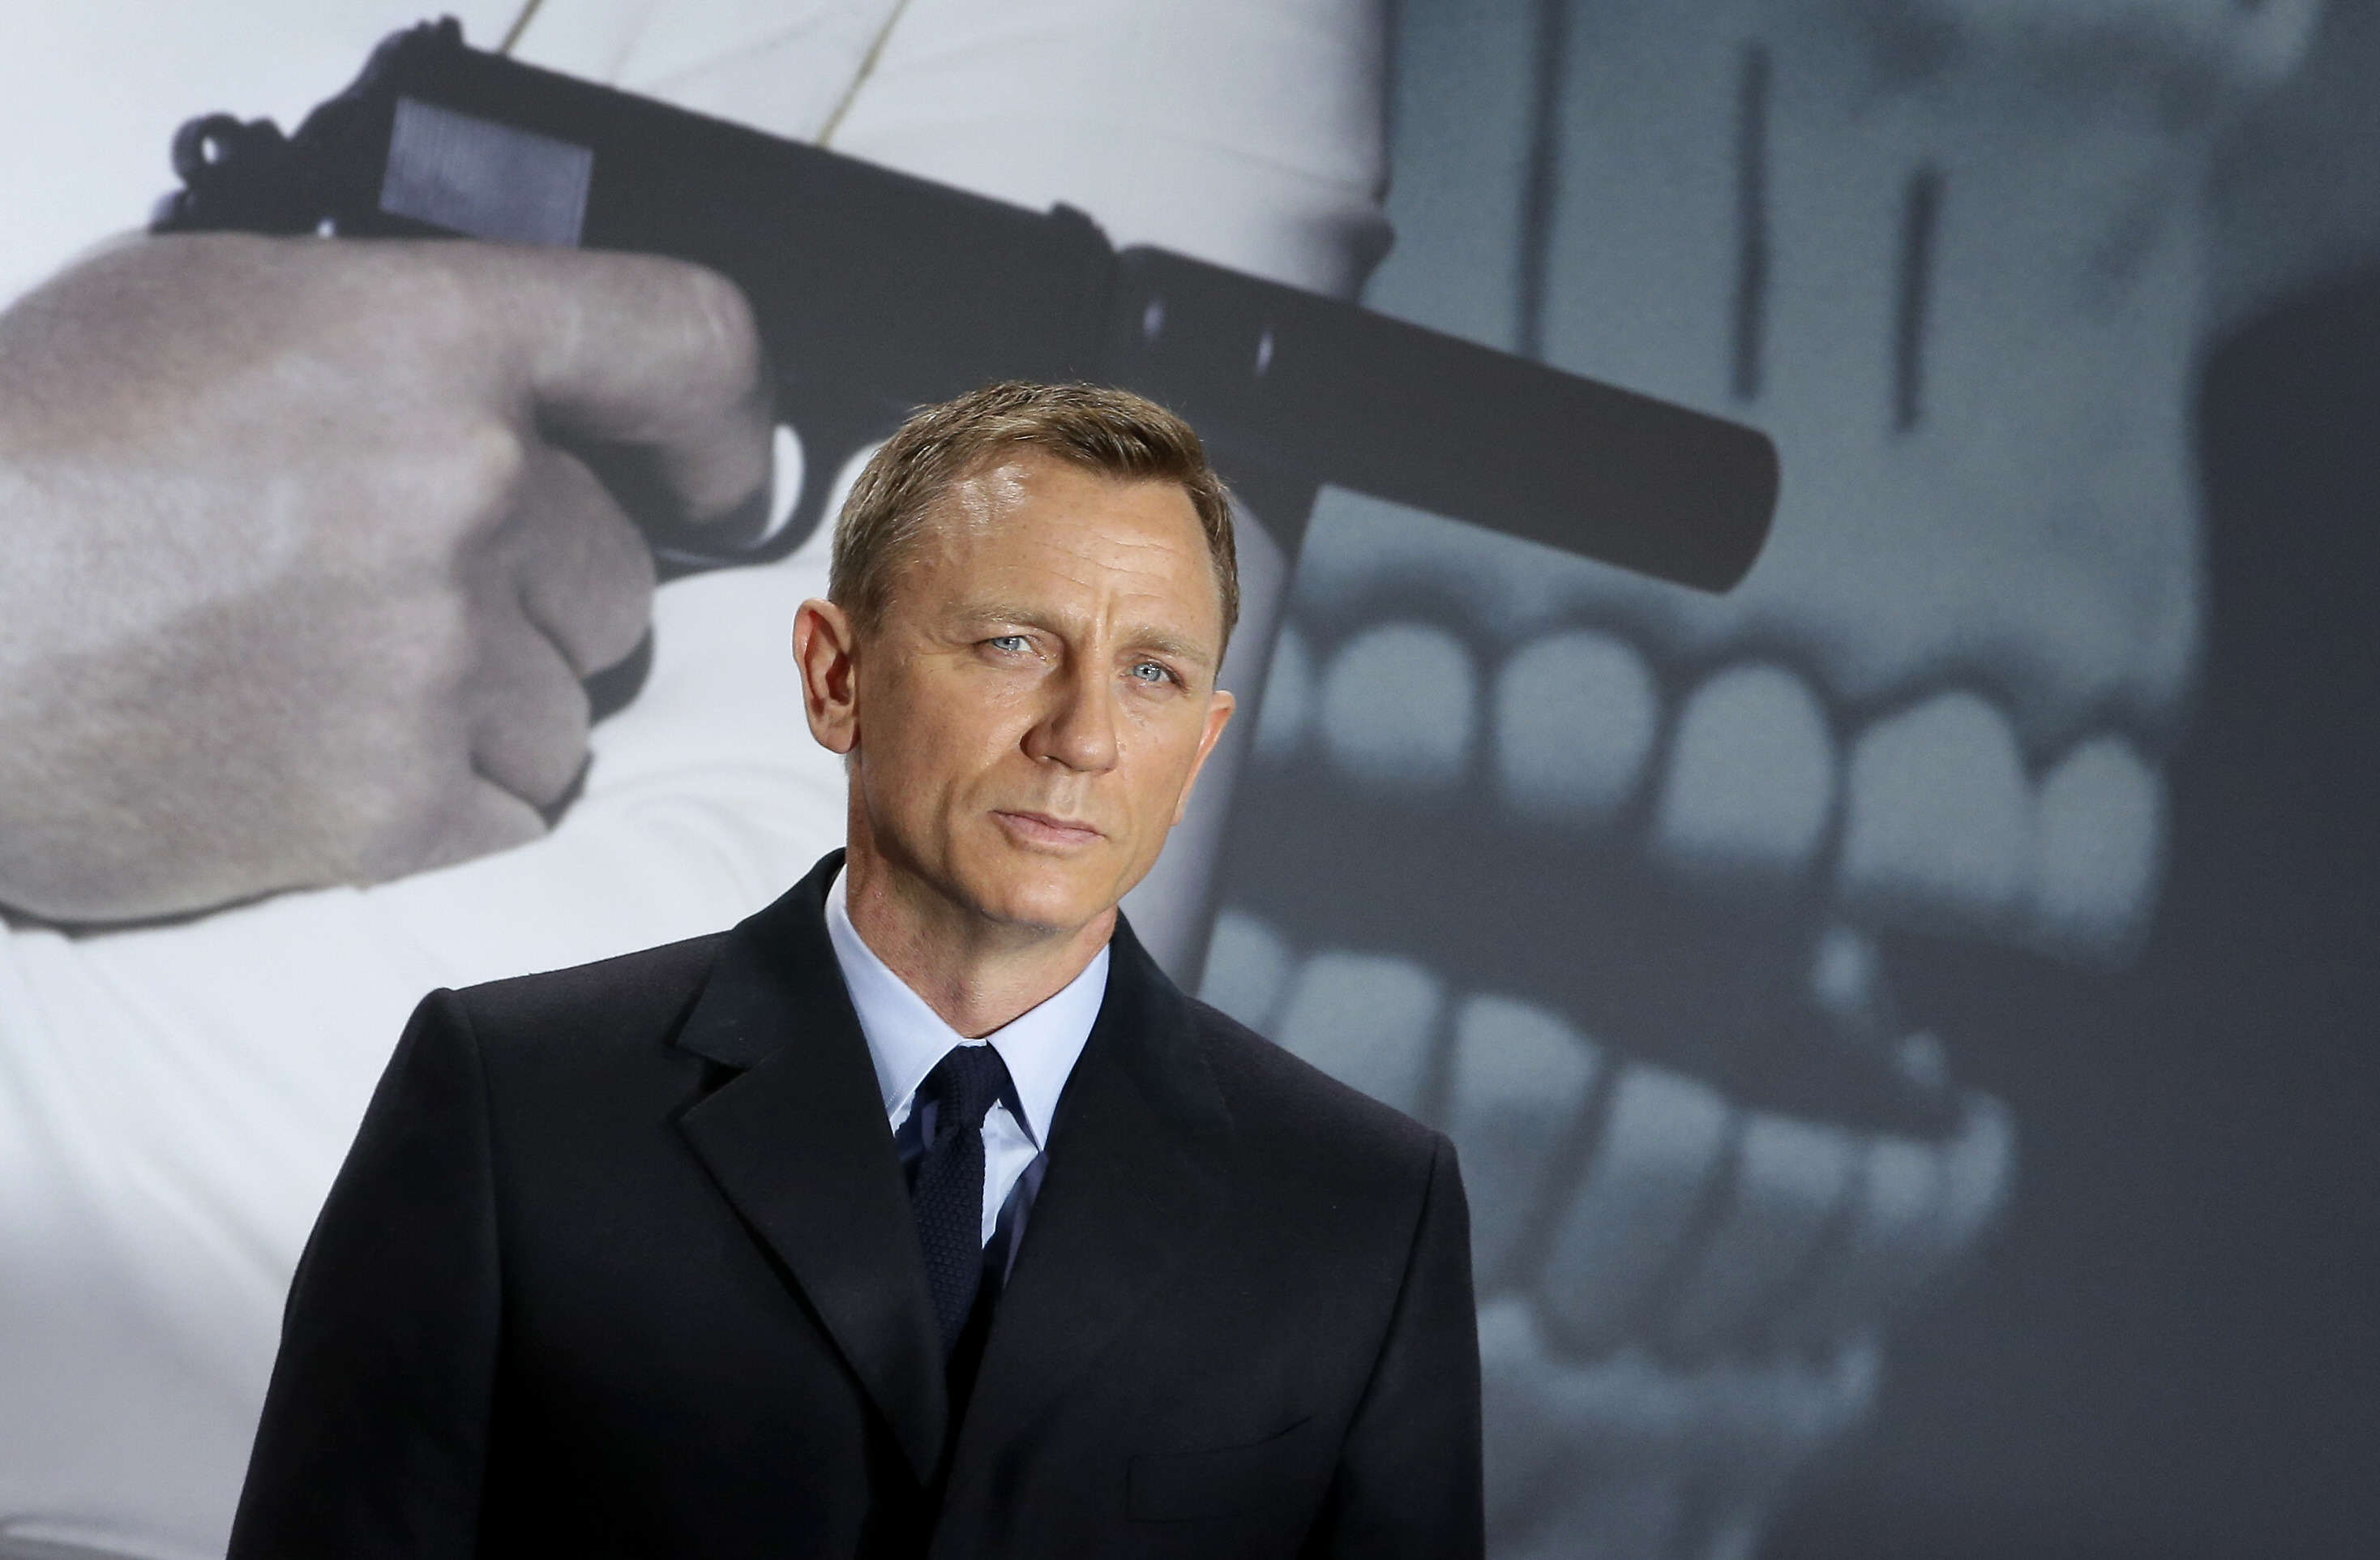 craig1 Insider Reveals Daniel Craigs Massive F*ck Up While Filming Skyfall